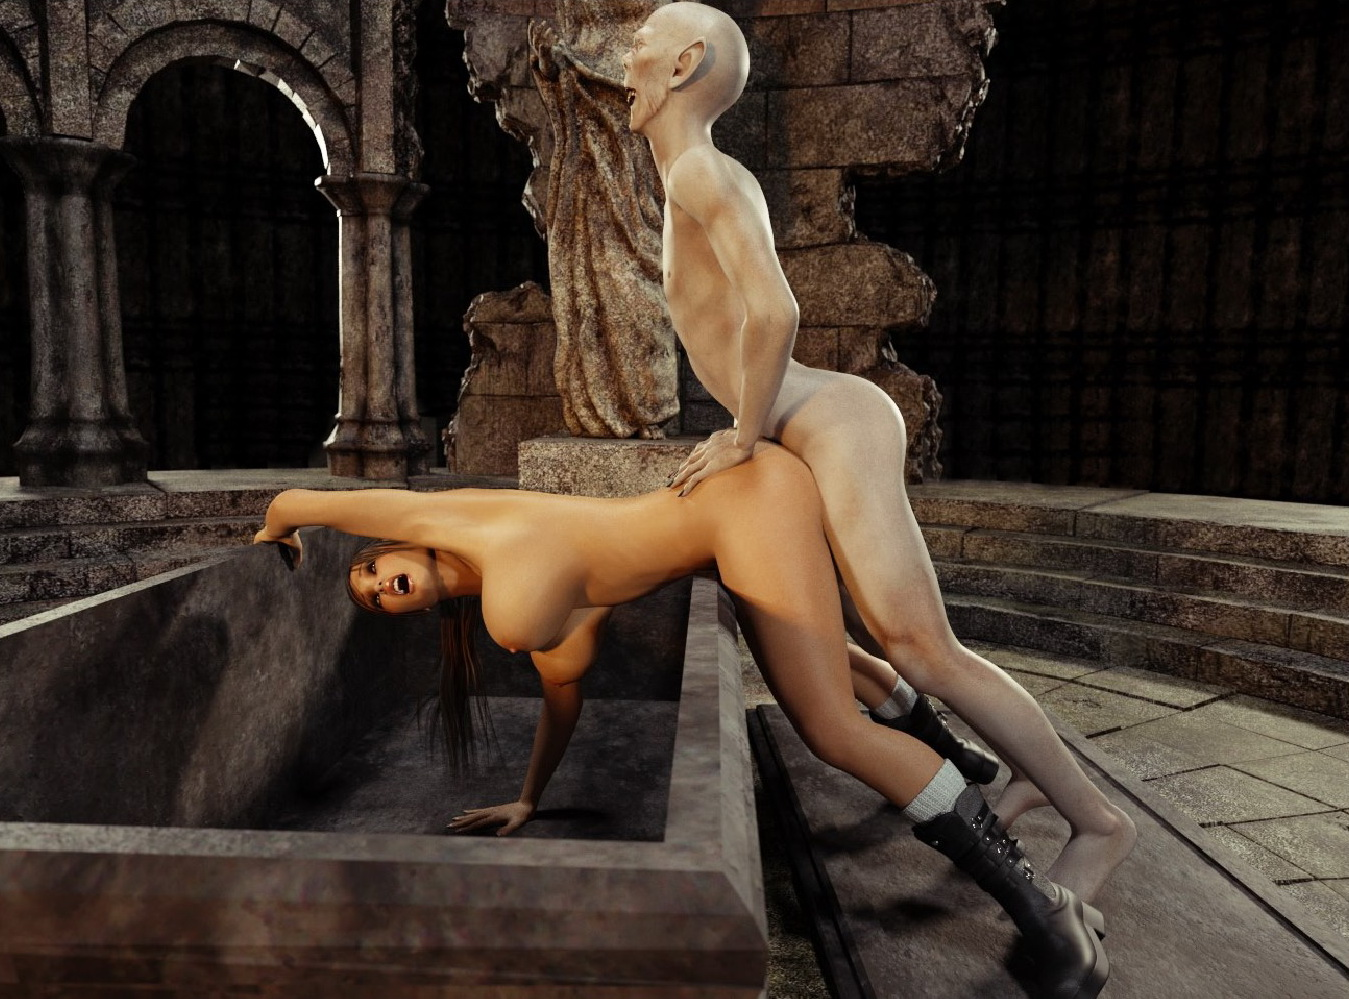 Sexey nude fucking images of tom raider sexual photo